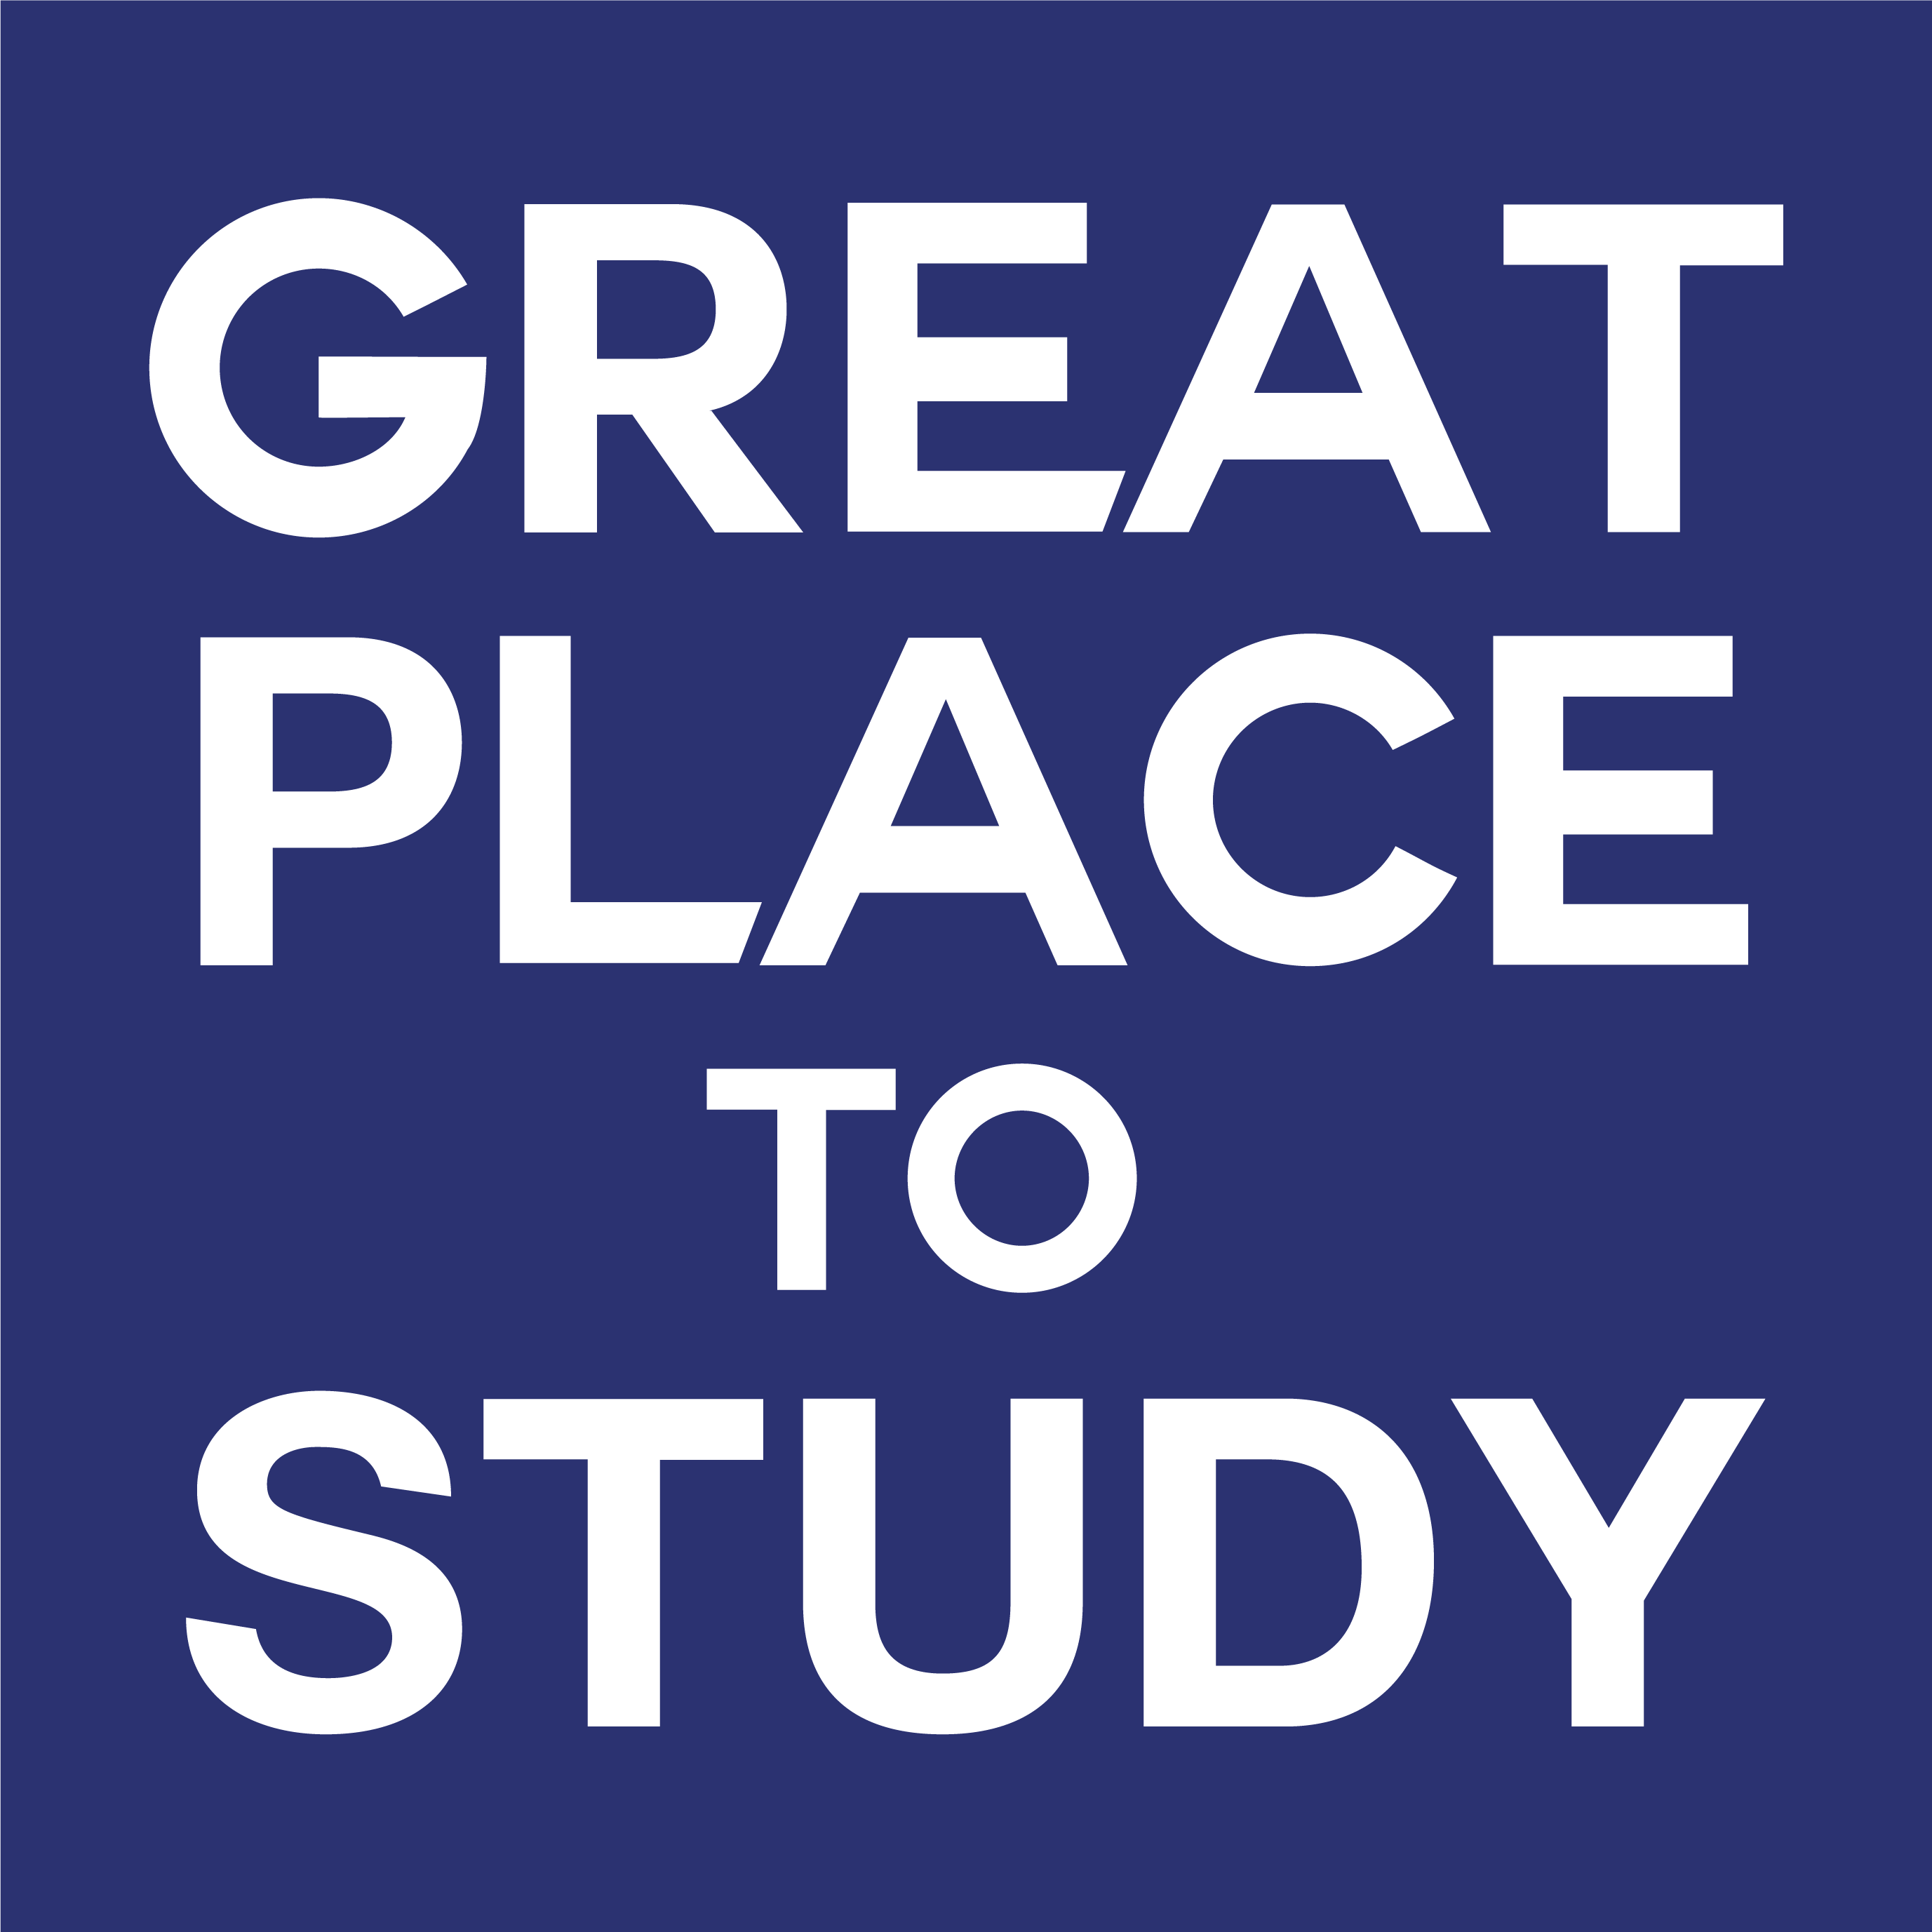 Certificacion-Great-Place-to-Study